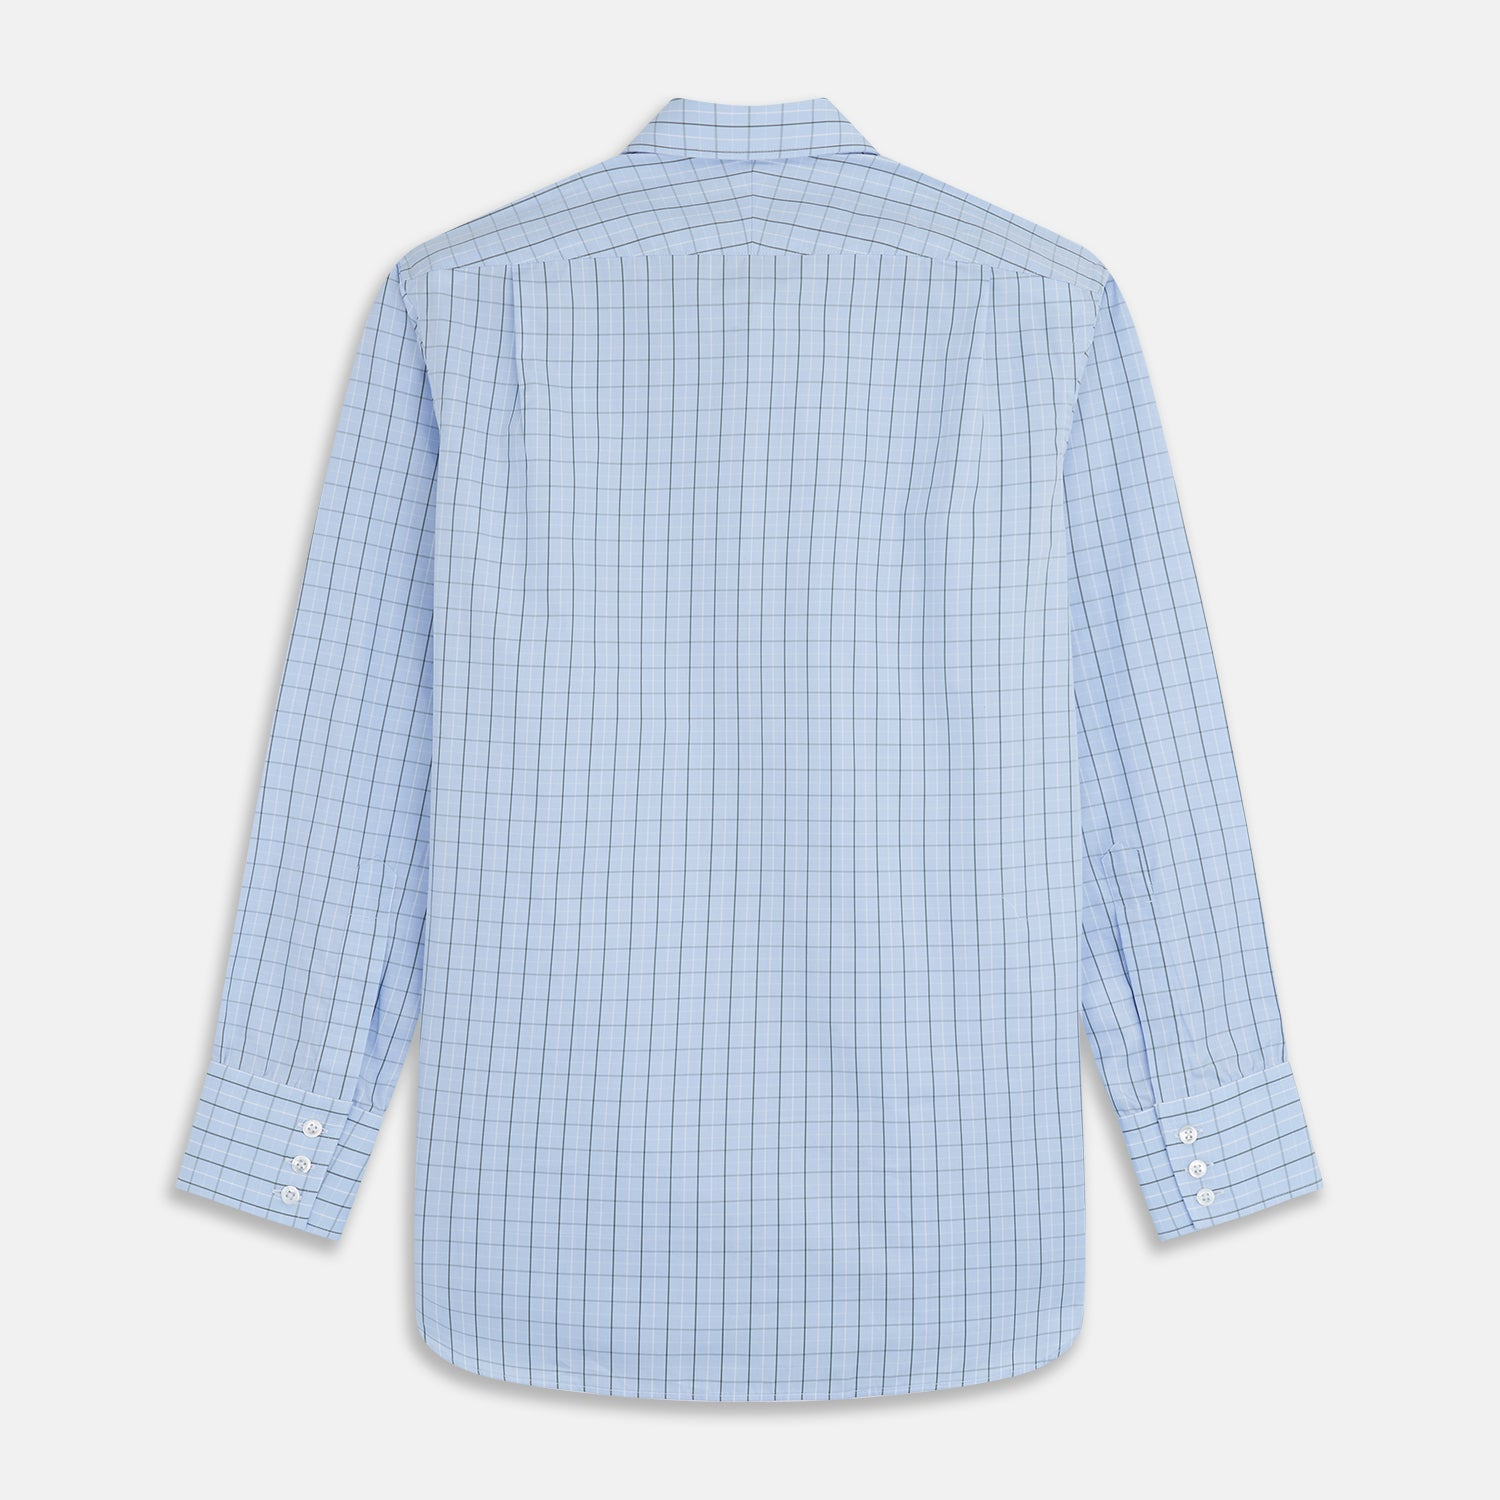 Green Graph Check Regular Fit Shirt with T&A Collar and 3-Button Cuffs